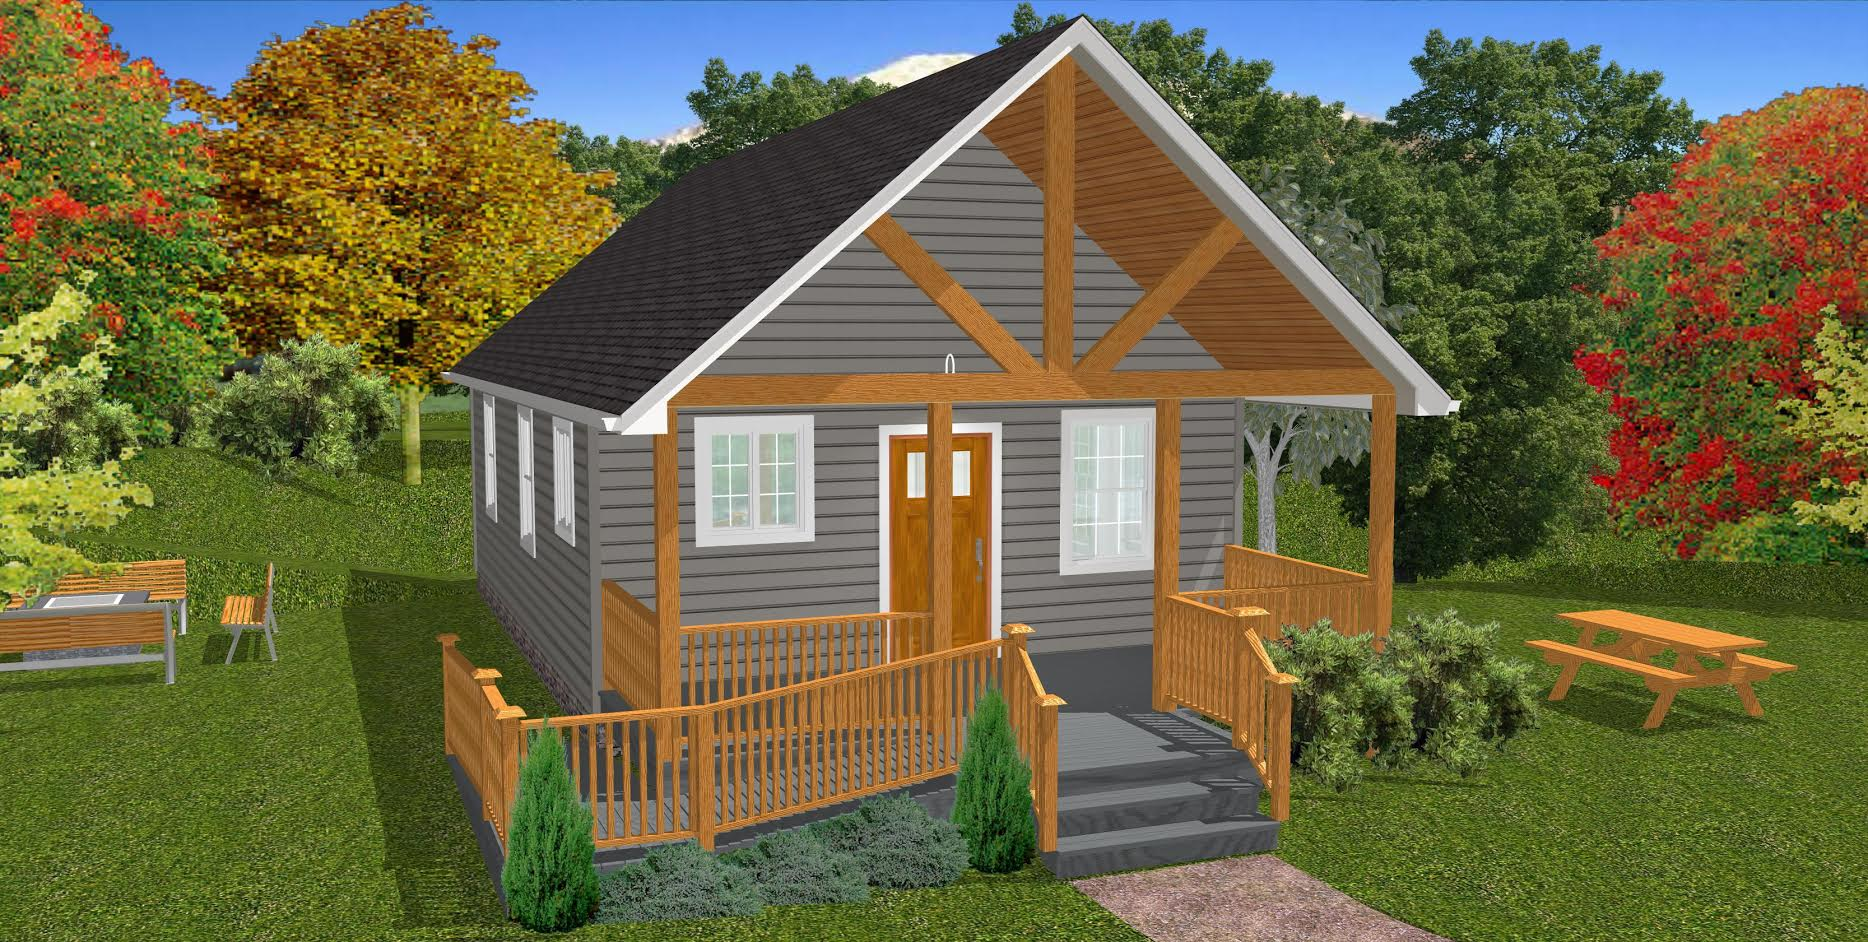 The oasis 600 sq ft wheelchair friendly home plans for Wheelchair homes